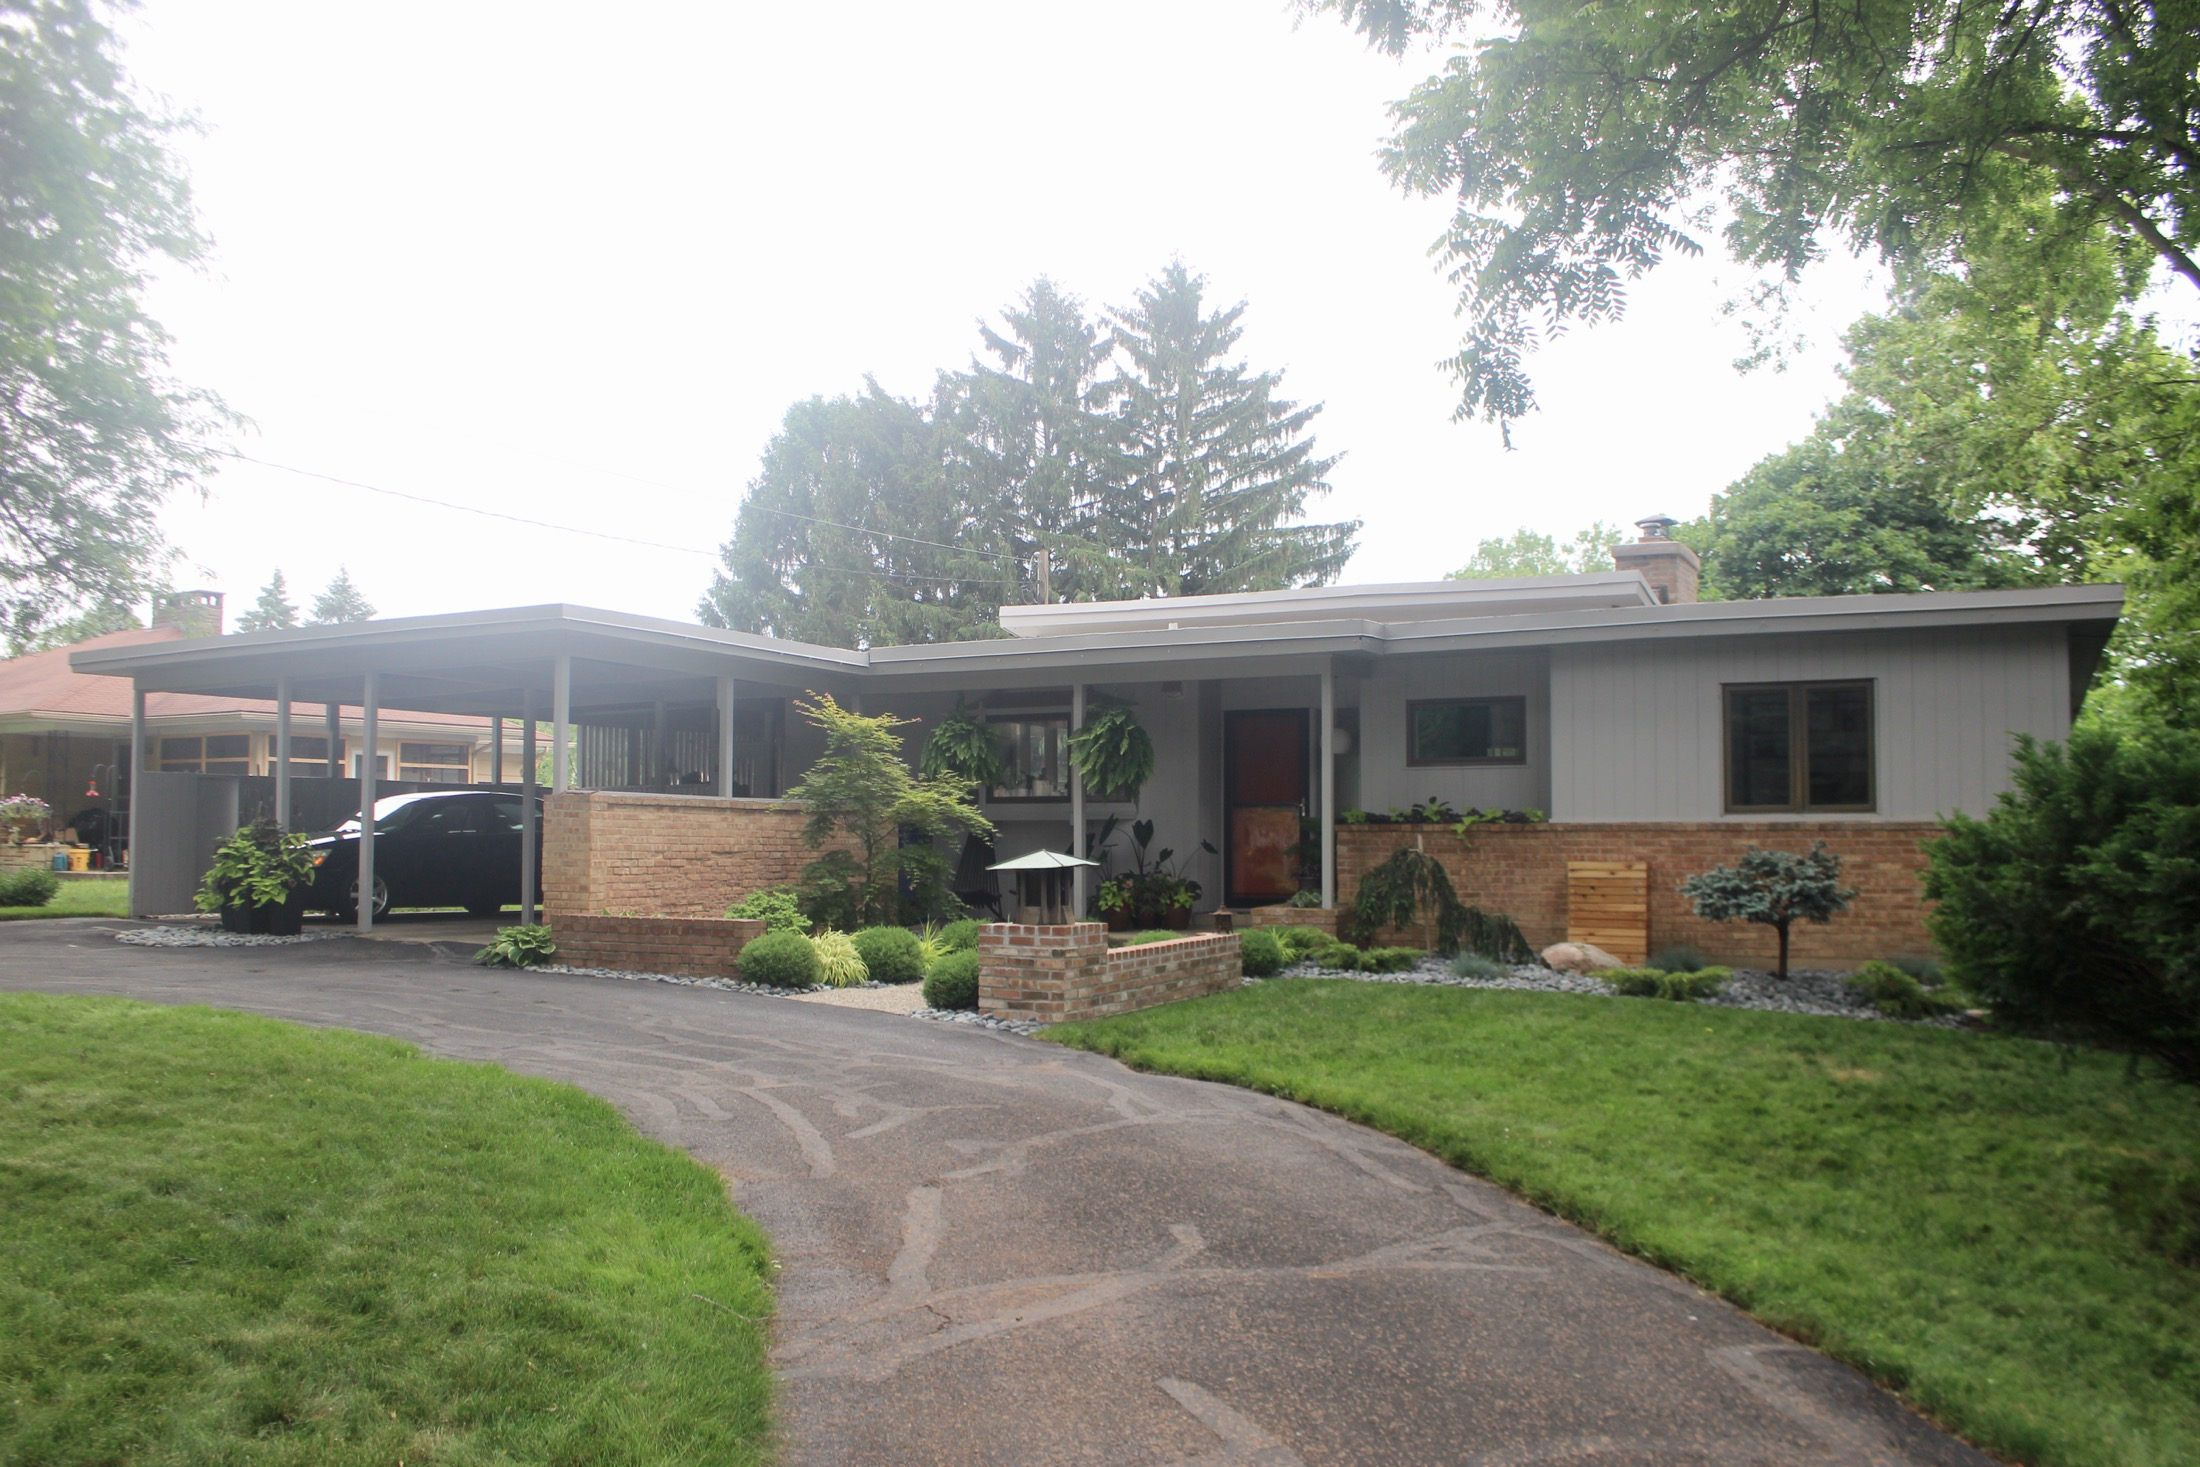 Exterior with view of carport and circular drive